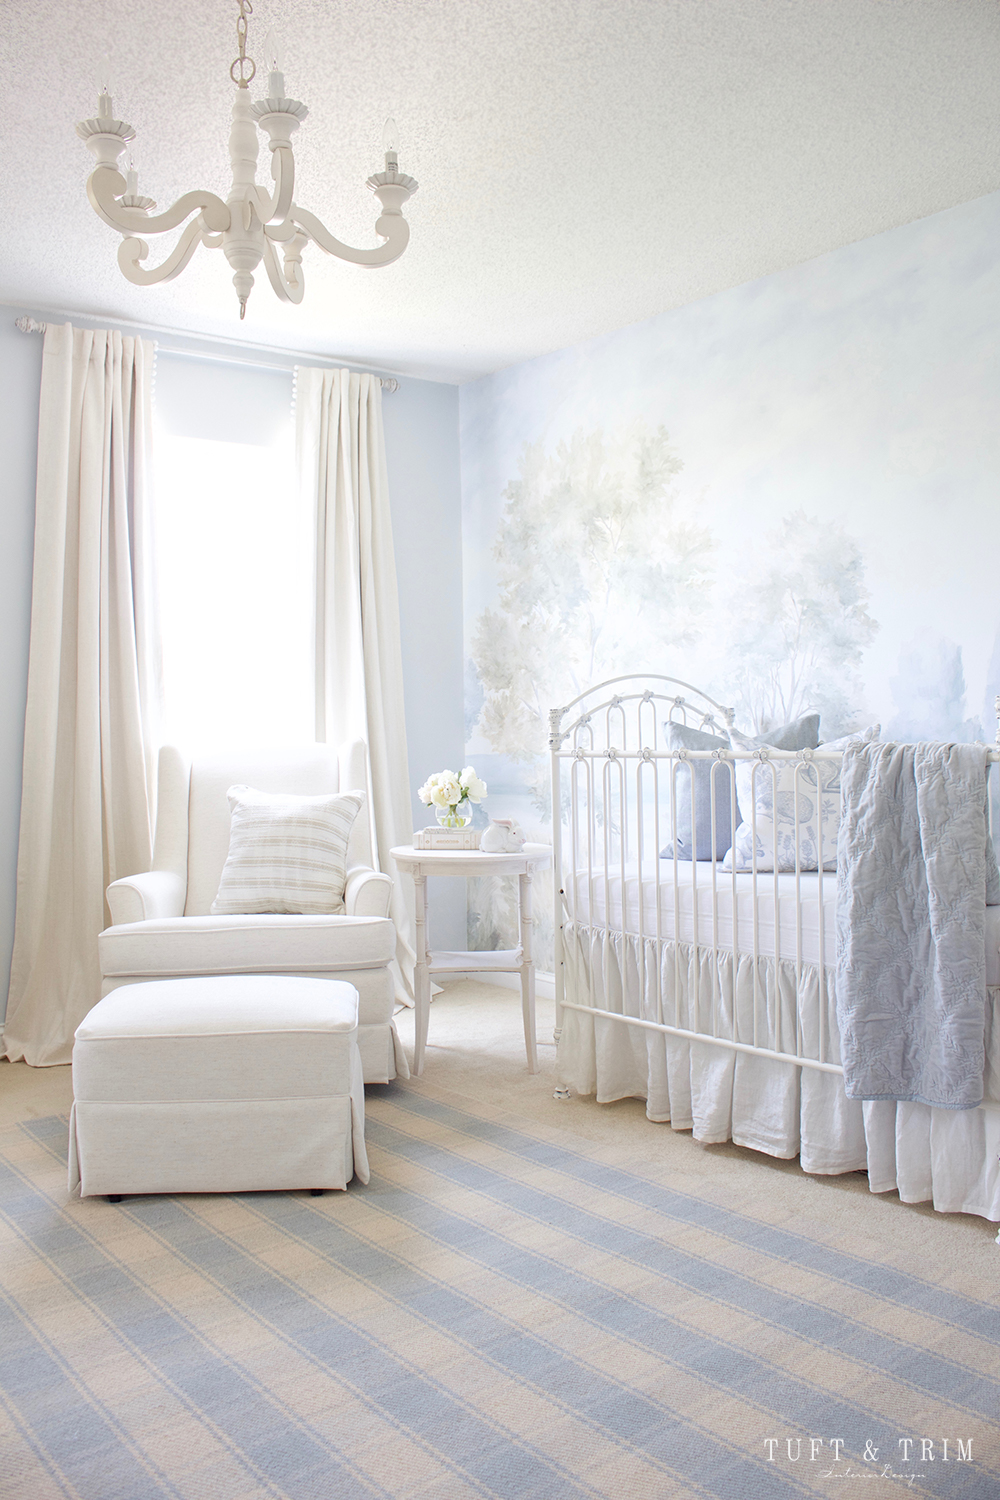 A Whimsical Nature Themed Nursery Fit For A Prince Tuft